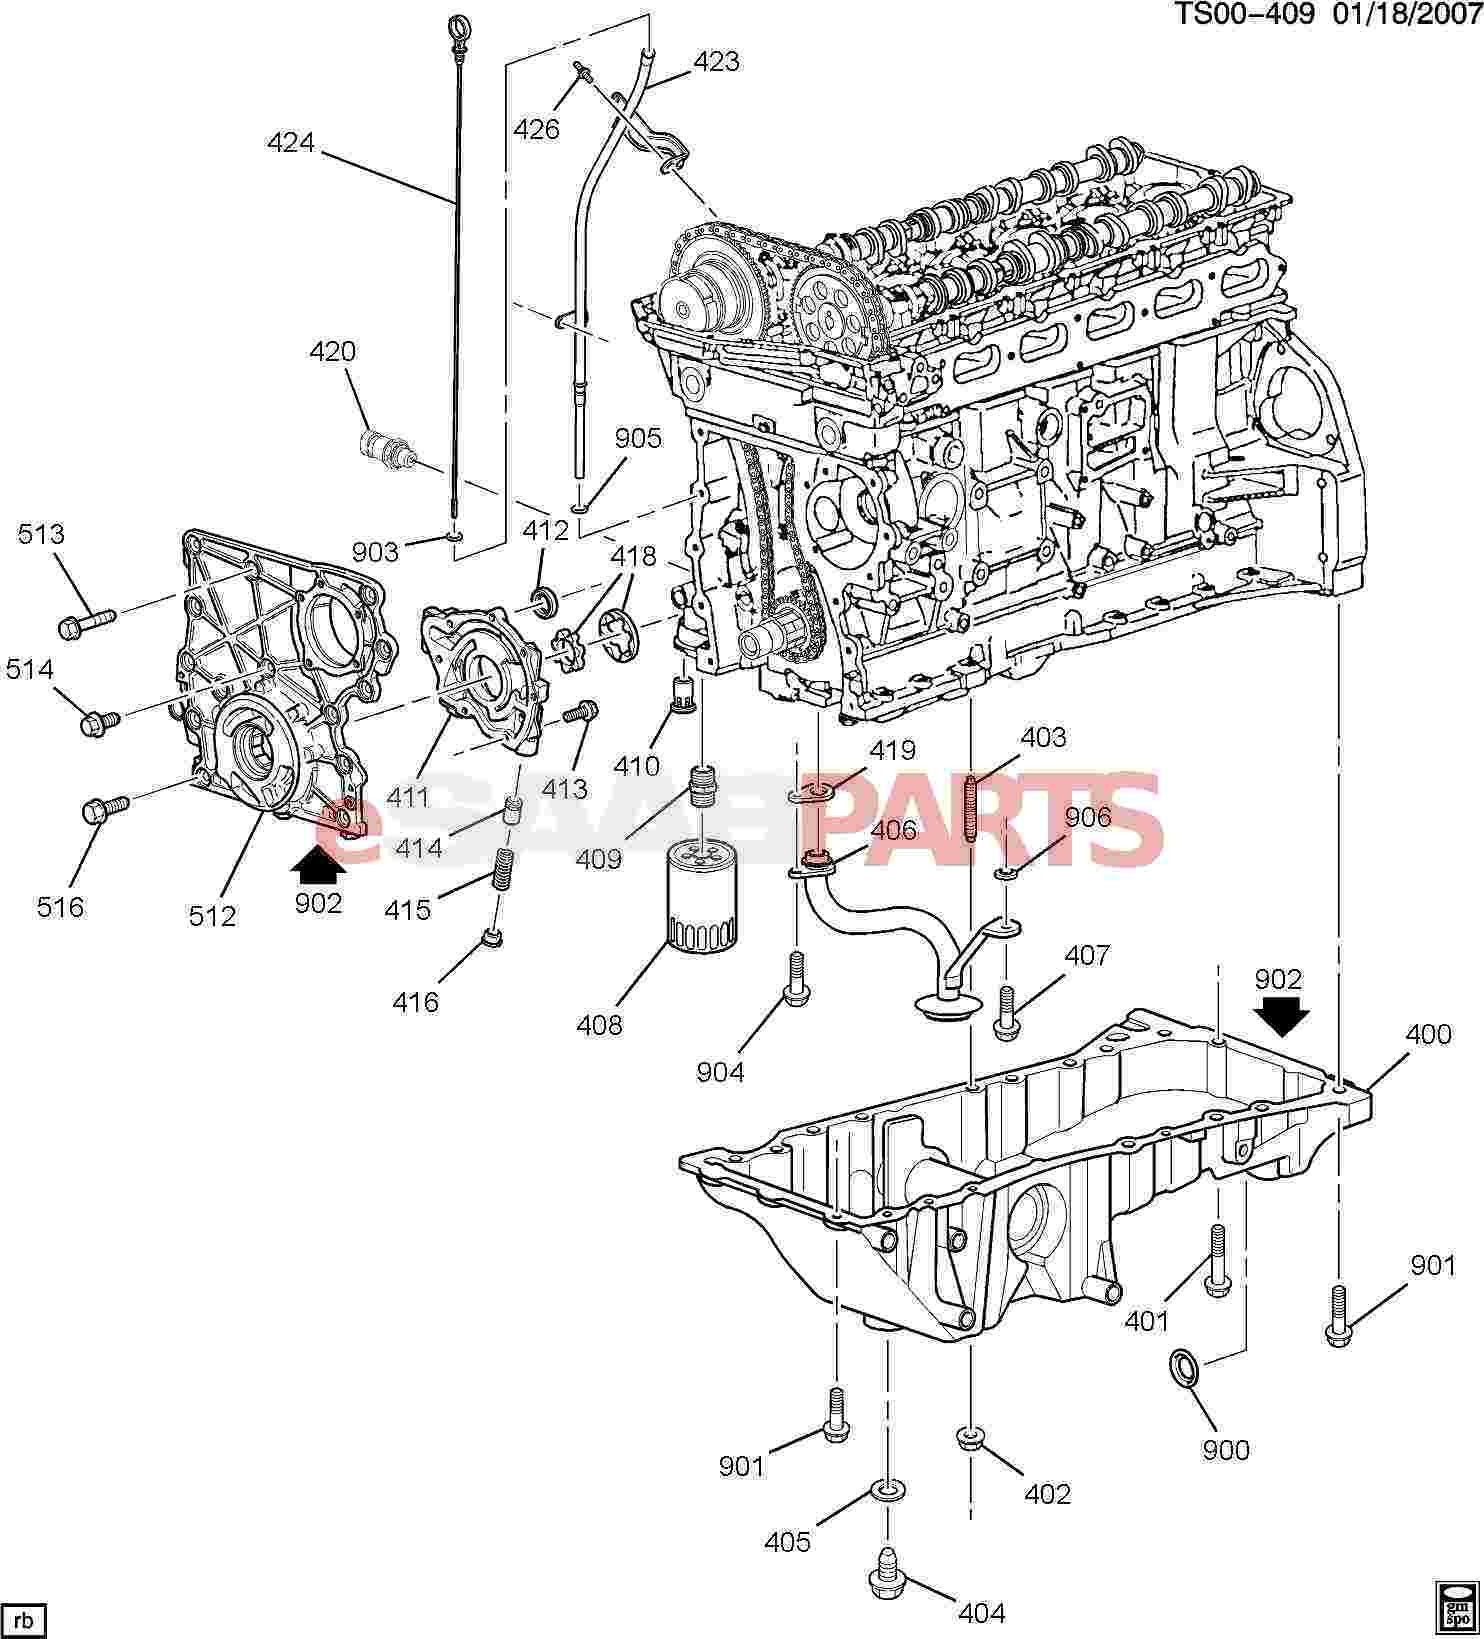 engine oil system diagram my wiring diagram rh detoxicrecenze com Saab Parts Saab 9-3 Engine Diagram